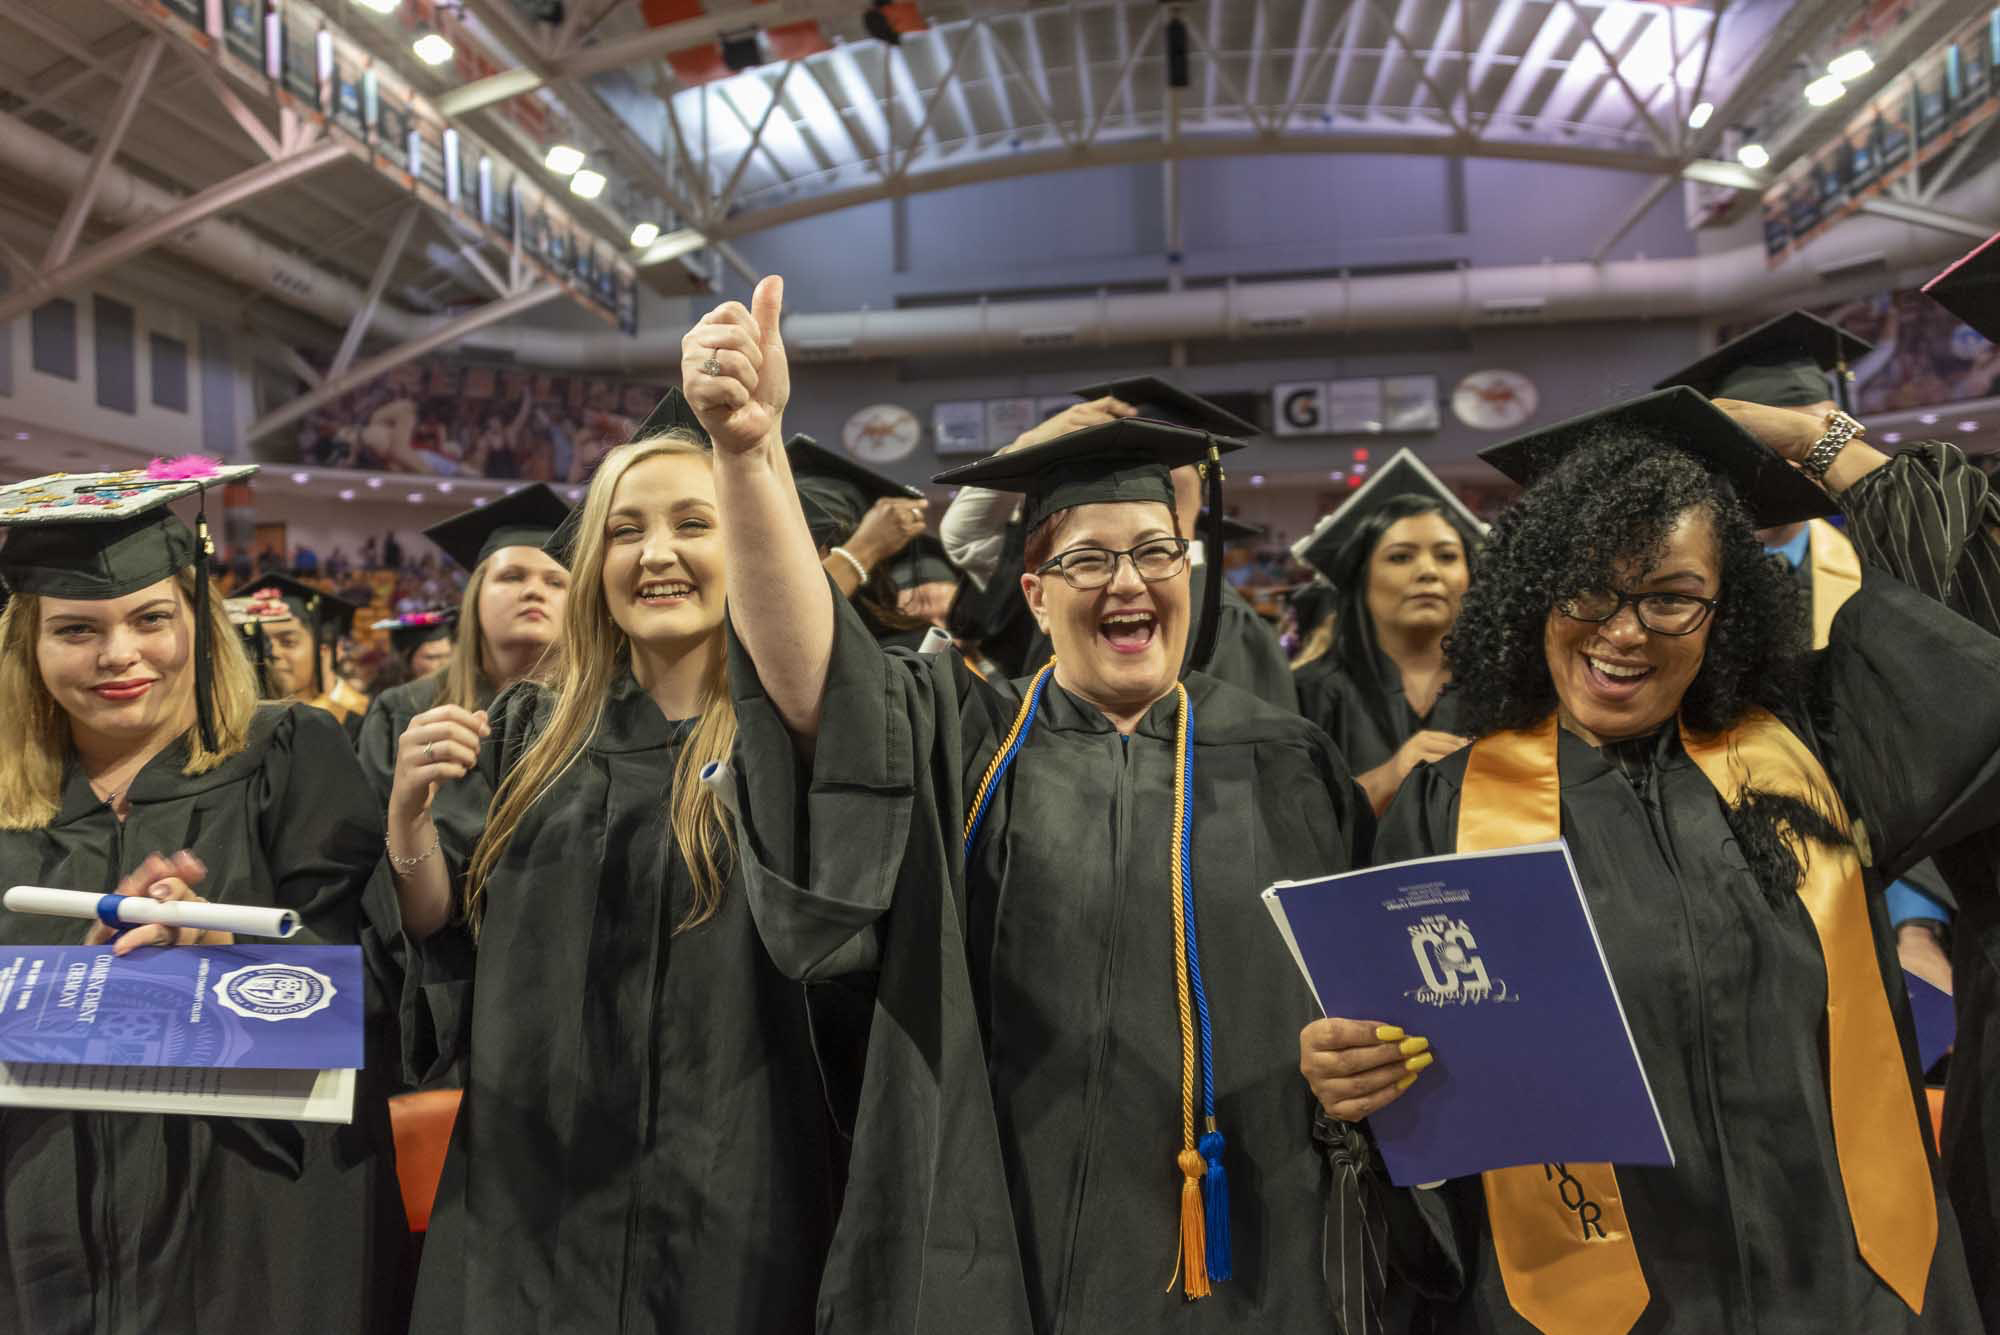 Four JCC graduates are all smiles at graduation May 13 at Campbell University.